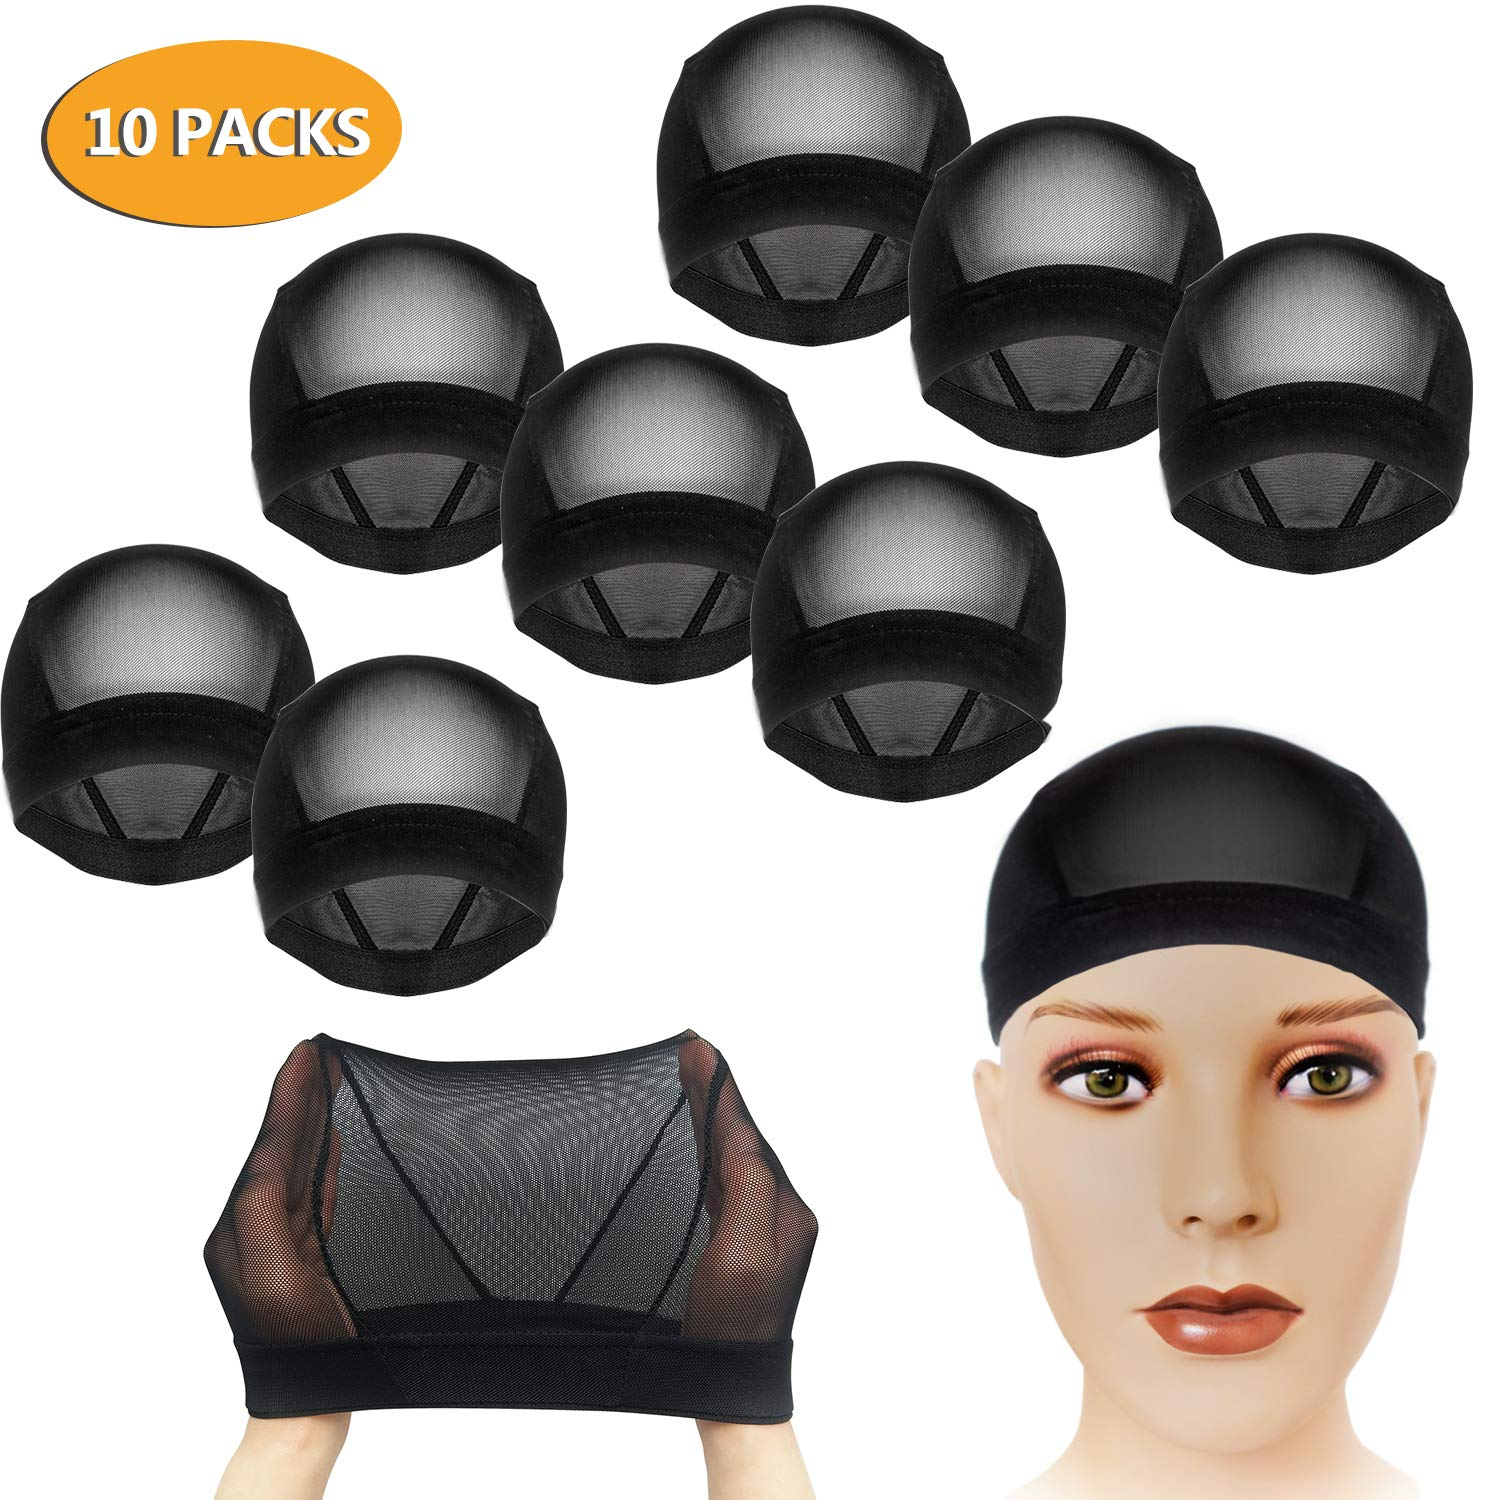 CODOHI 10 Packs Dome Wig Cap for Men Women All Round Stretchy Spandex Full Wig Cap, Weaving Mesh - Black by CODOHI